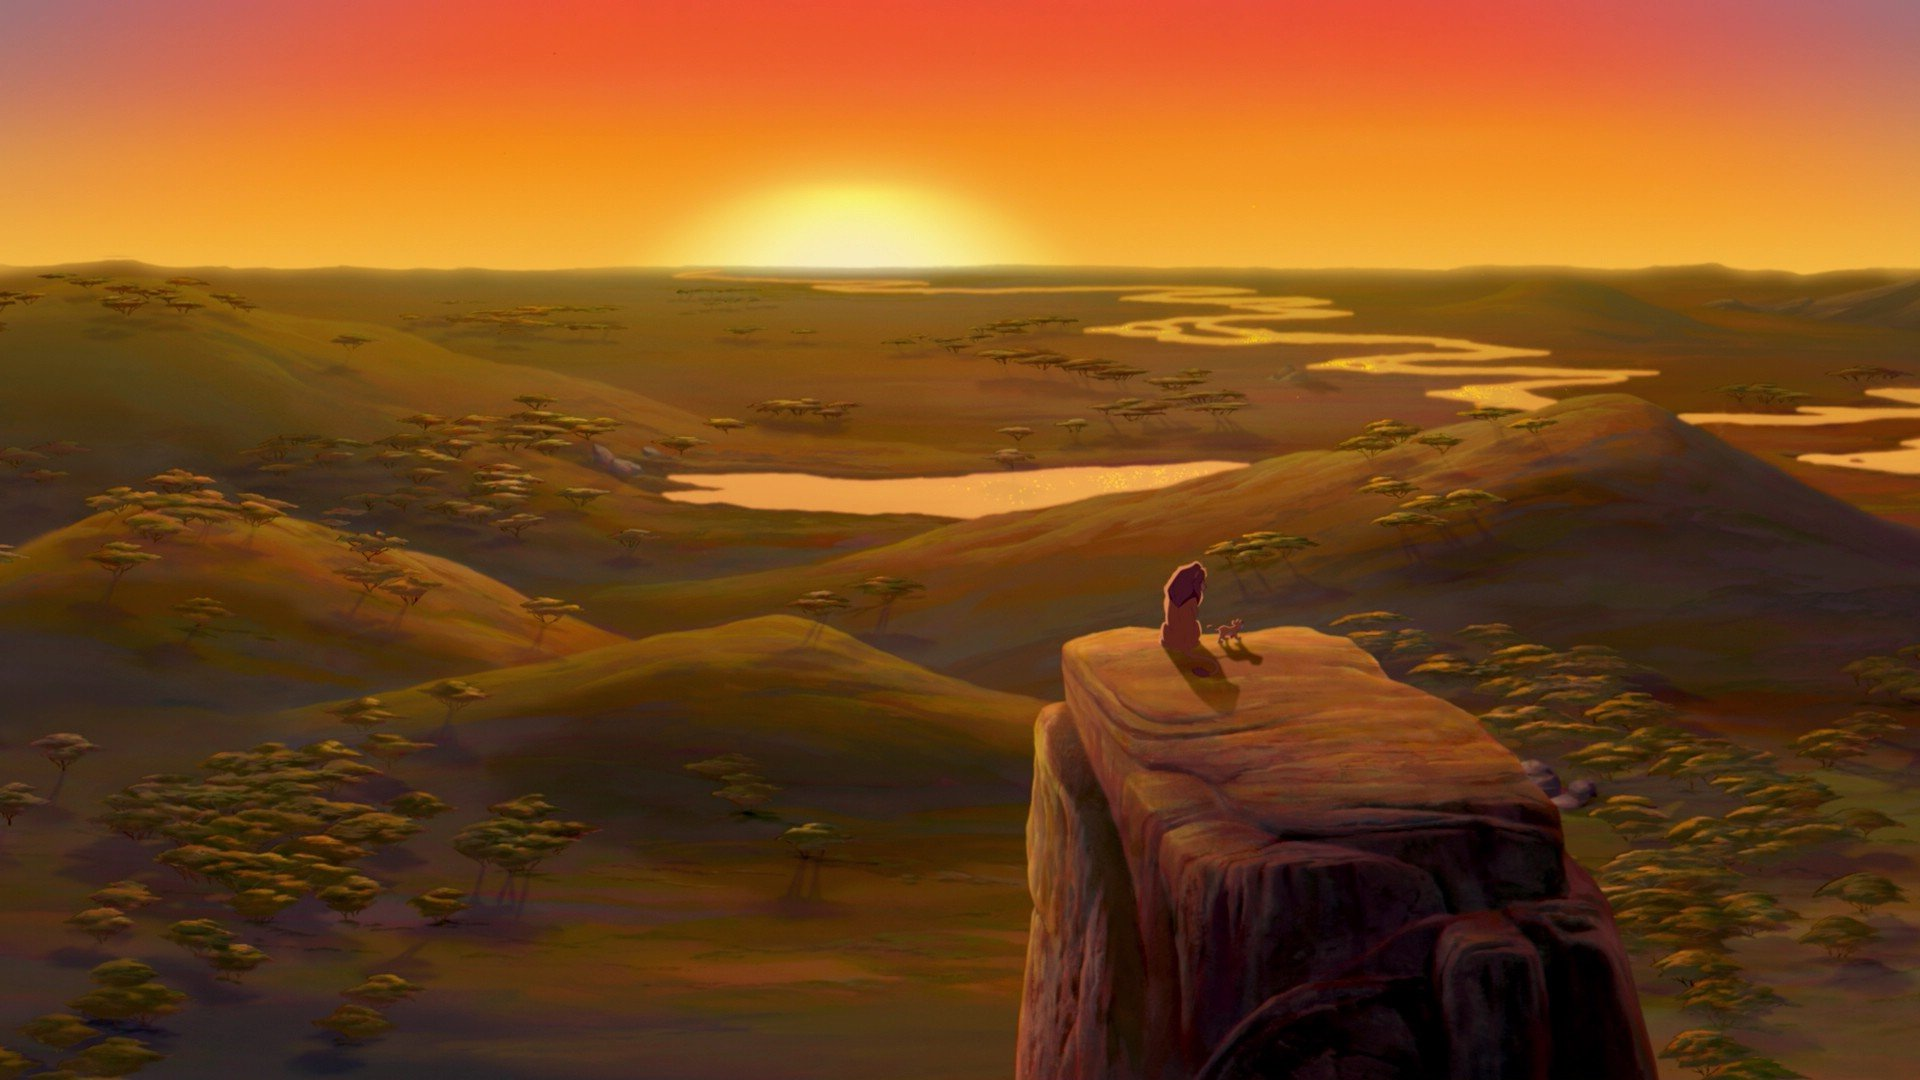 The Lion King Hd Wallpaper Background Image 1920x1080 Id